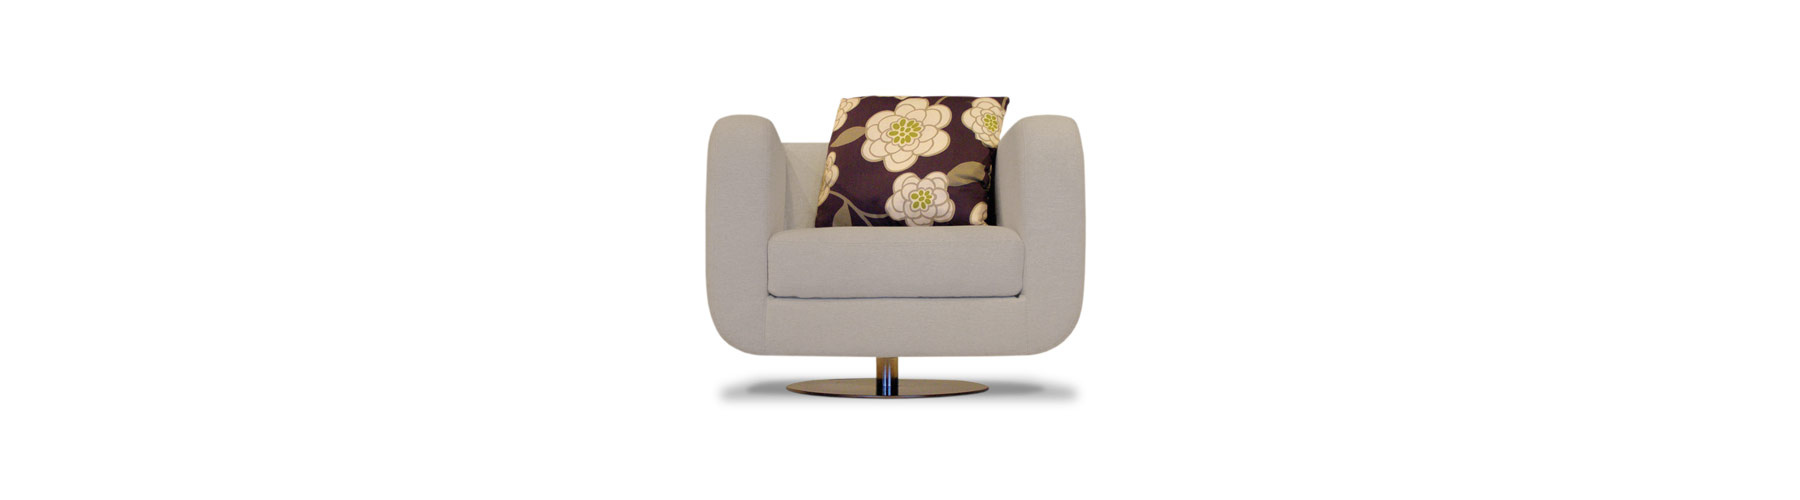 Mix - Fauteuil William